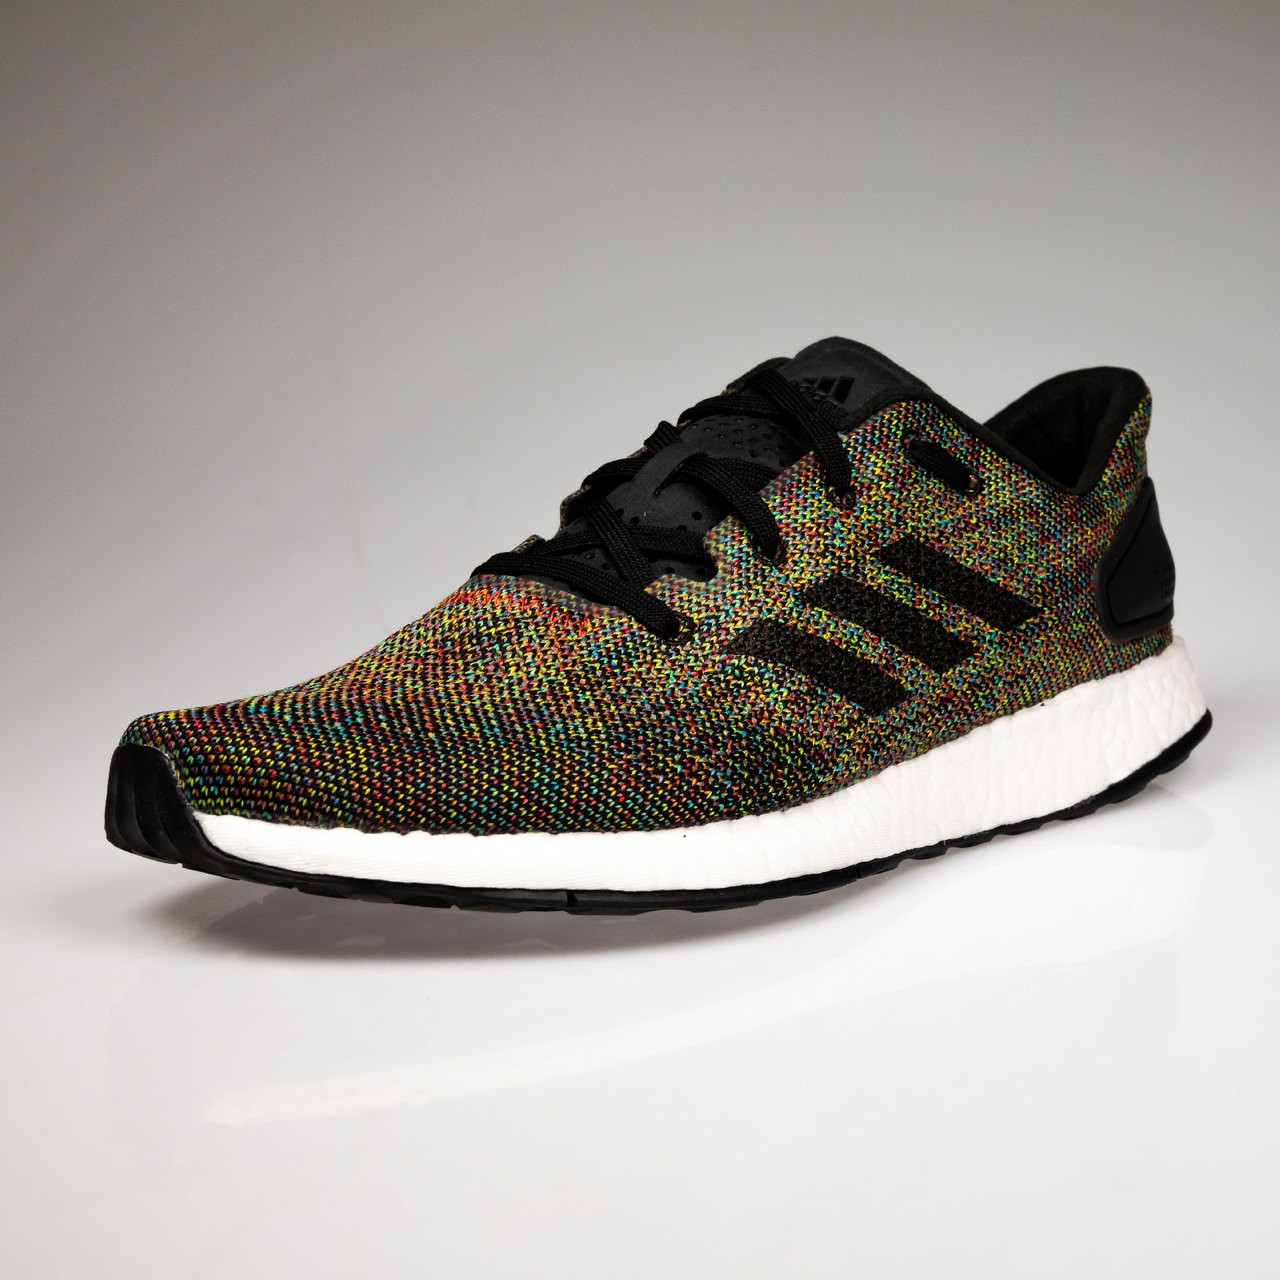 88a83a1c32503 ... Adidas PureBOOST Men s Running Shoes   Sneakers - CG2993 ...